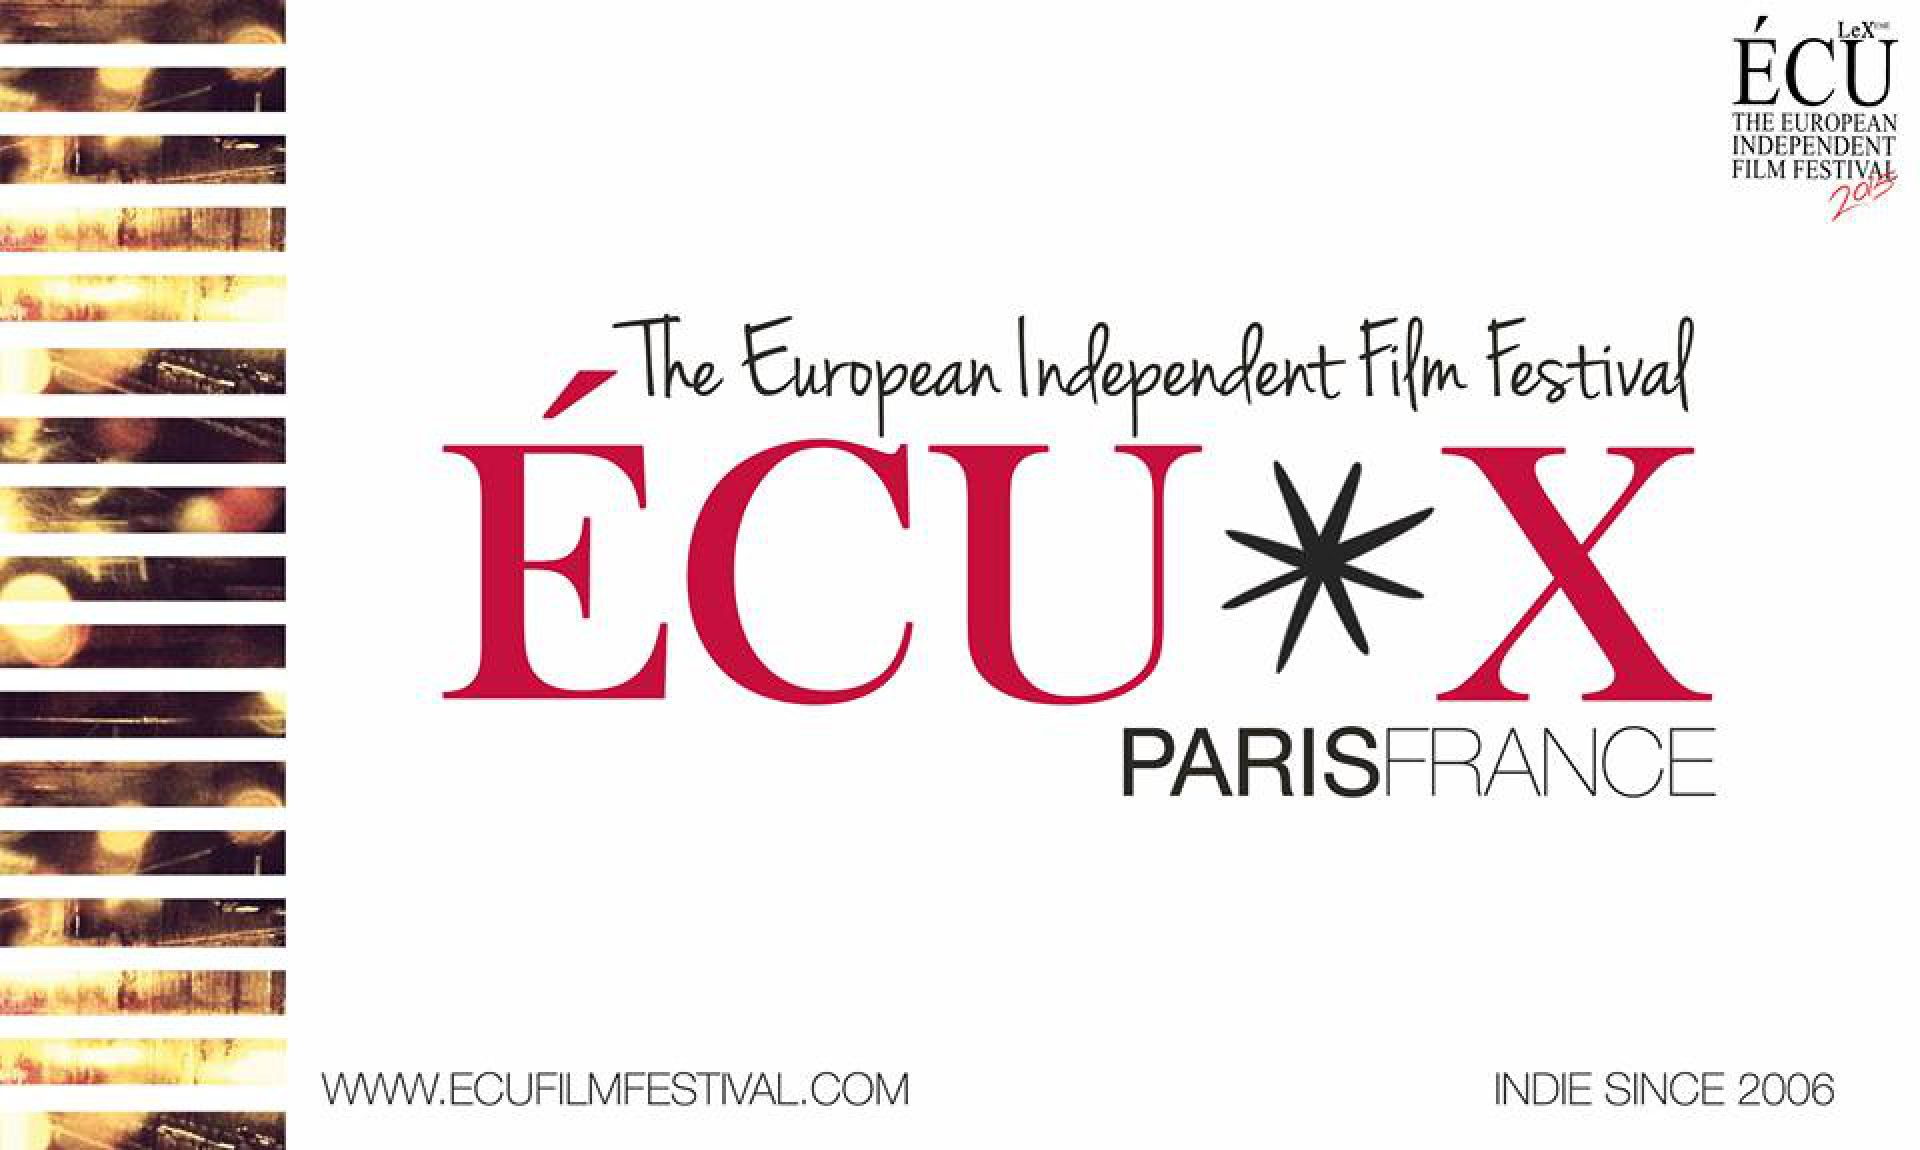 European independent film festival cu lgbtq friendly for Independent hotels near me